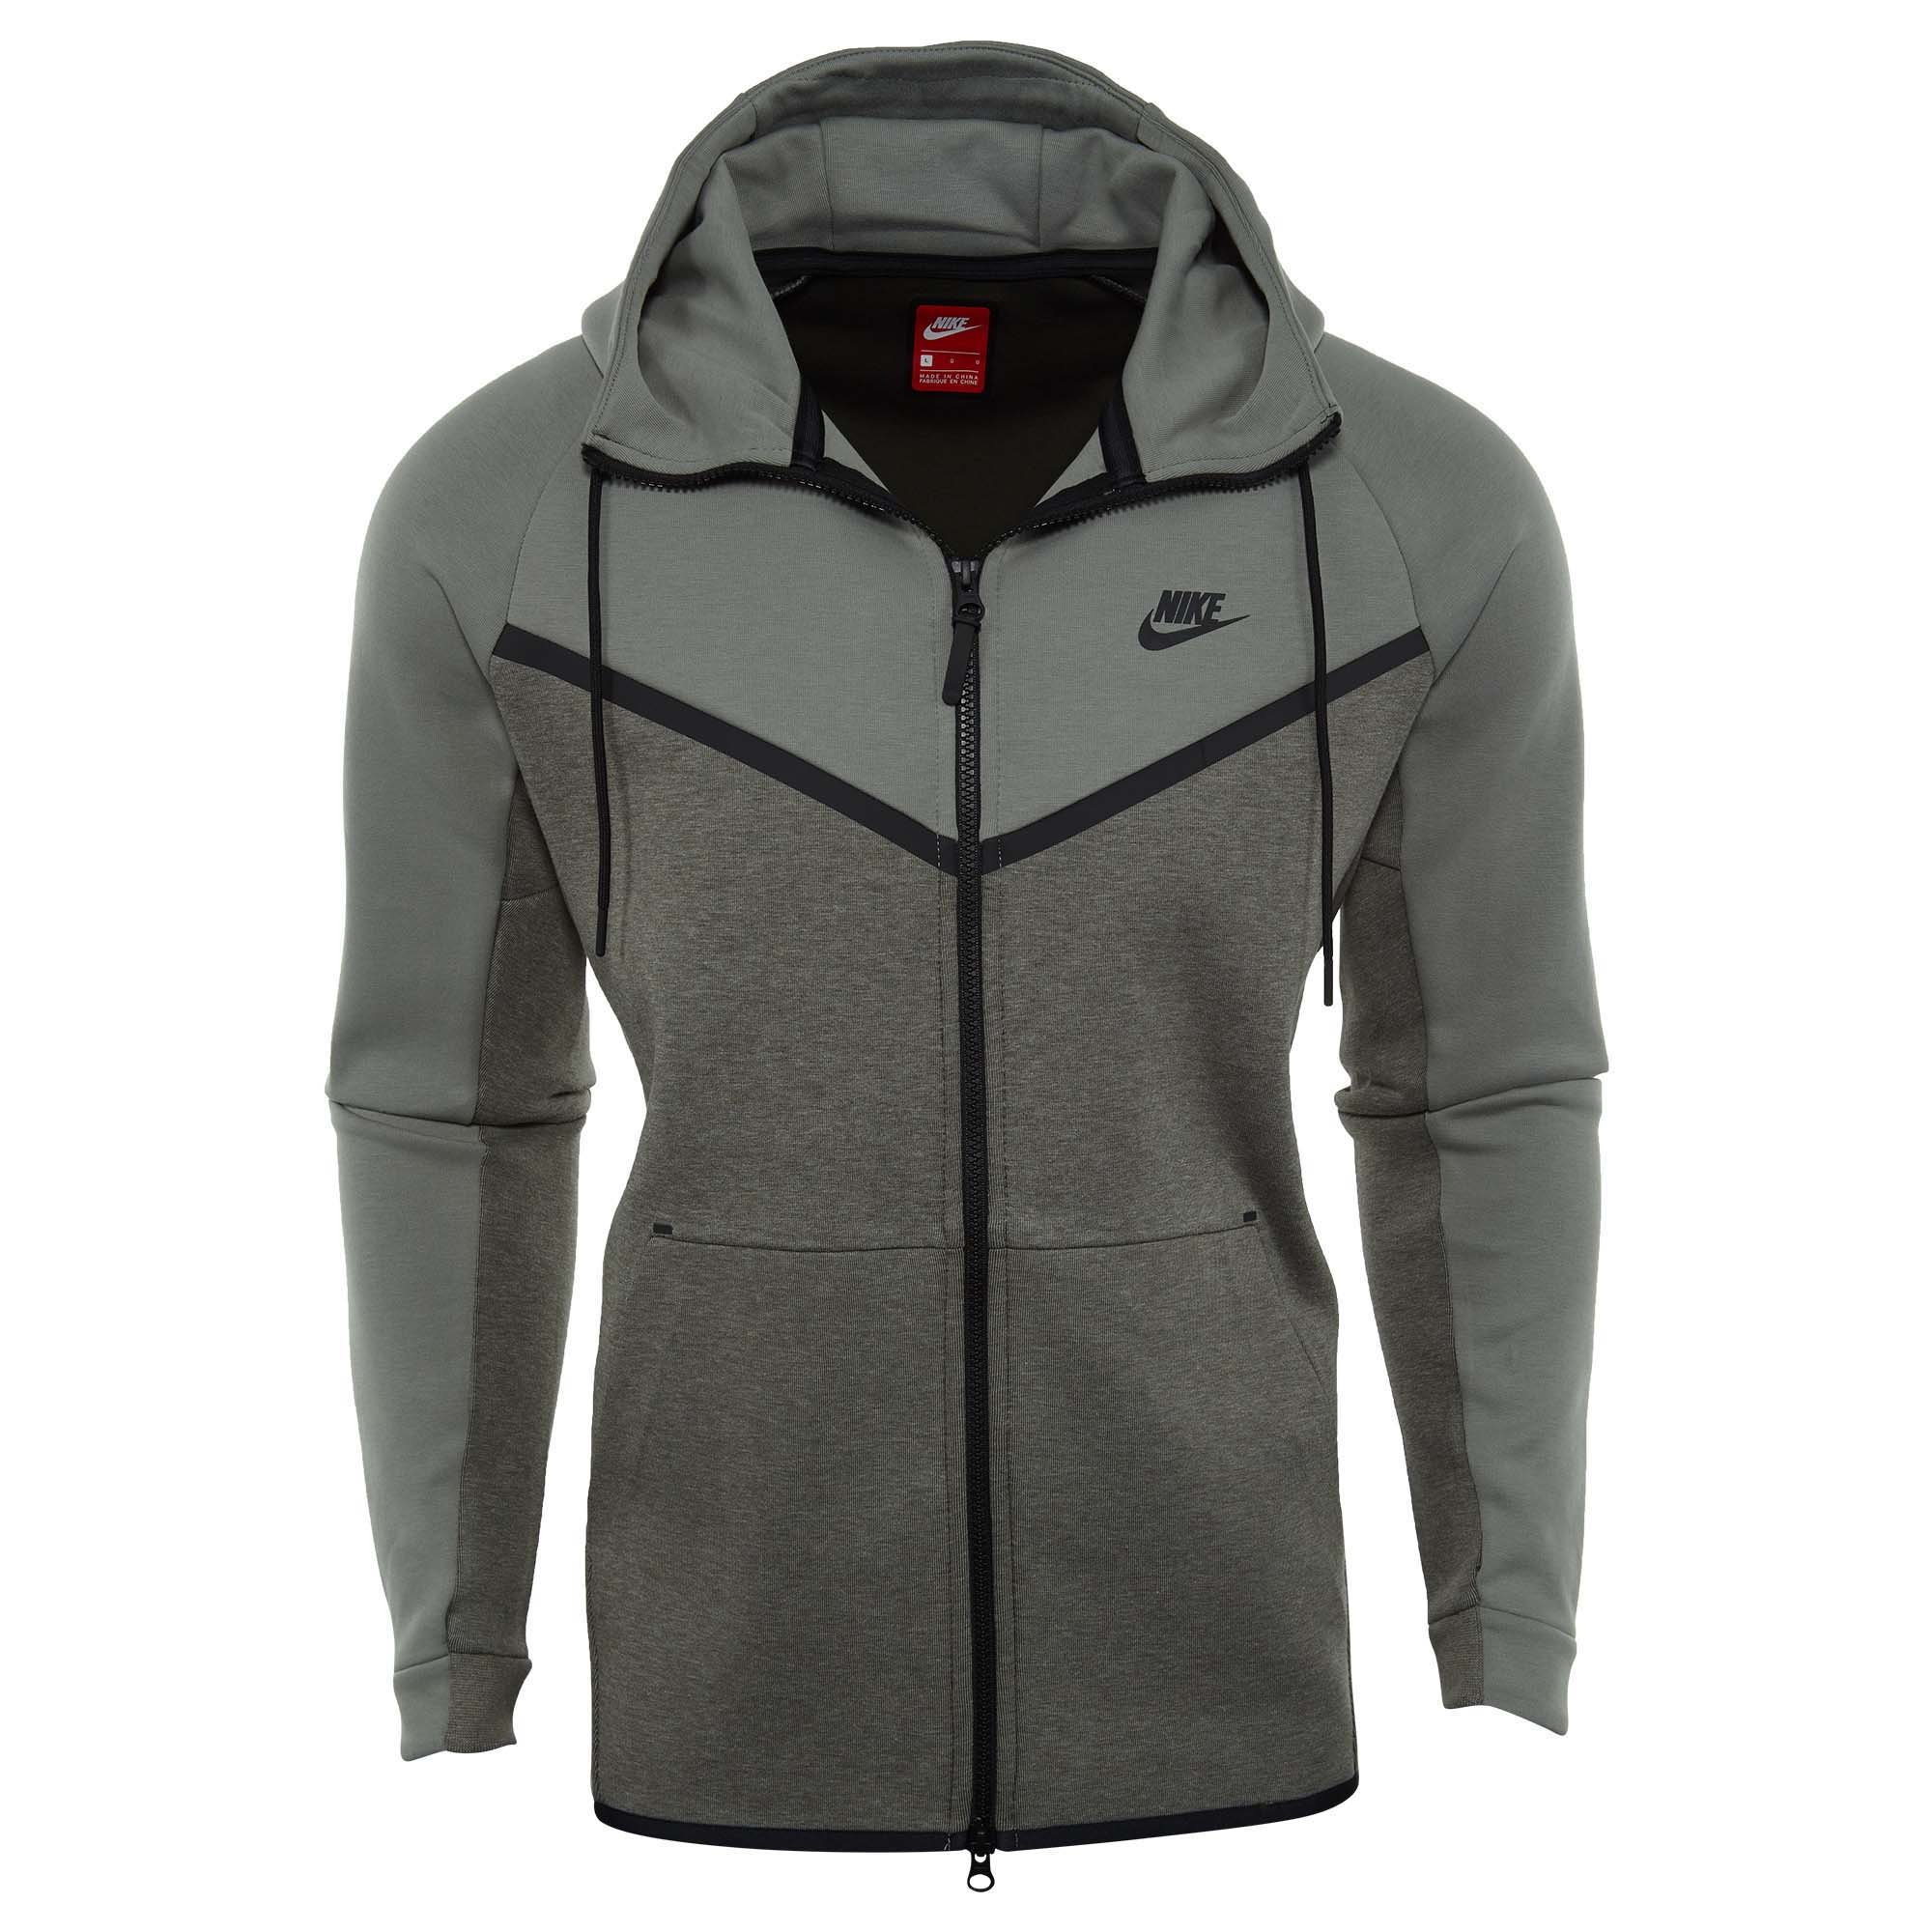 cd6fab5438 Nike Sportswear Tech Fleece Full Zip Up Hoodie Dark Stucco Heather Black  885904 004 (l)